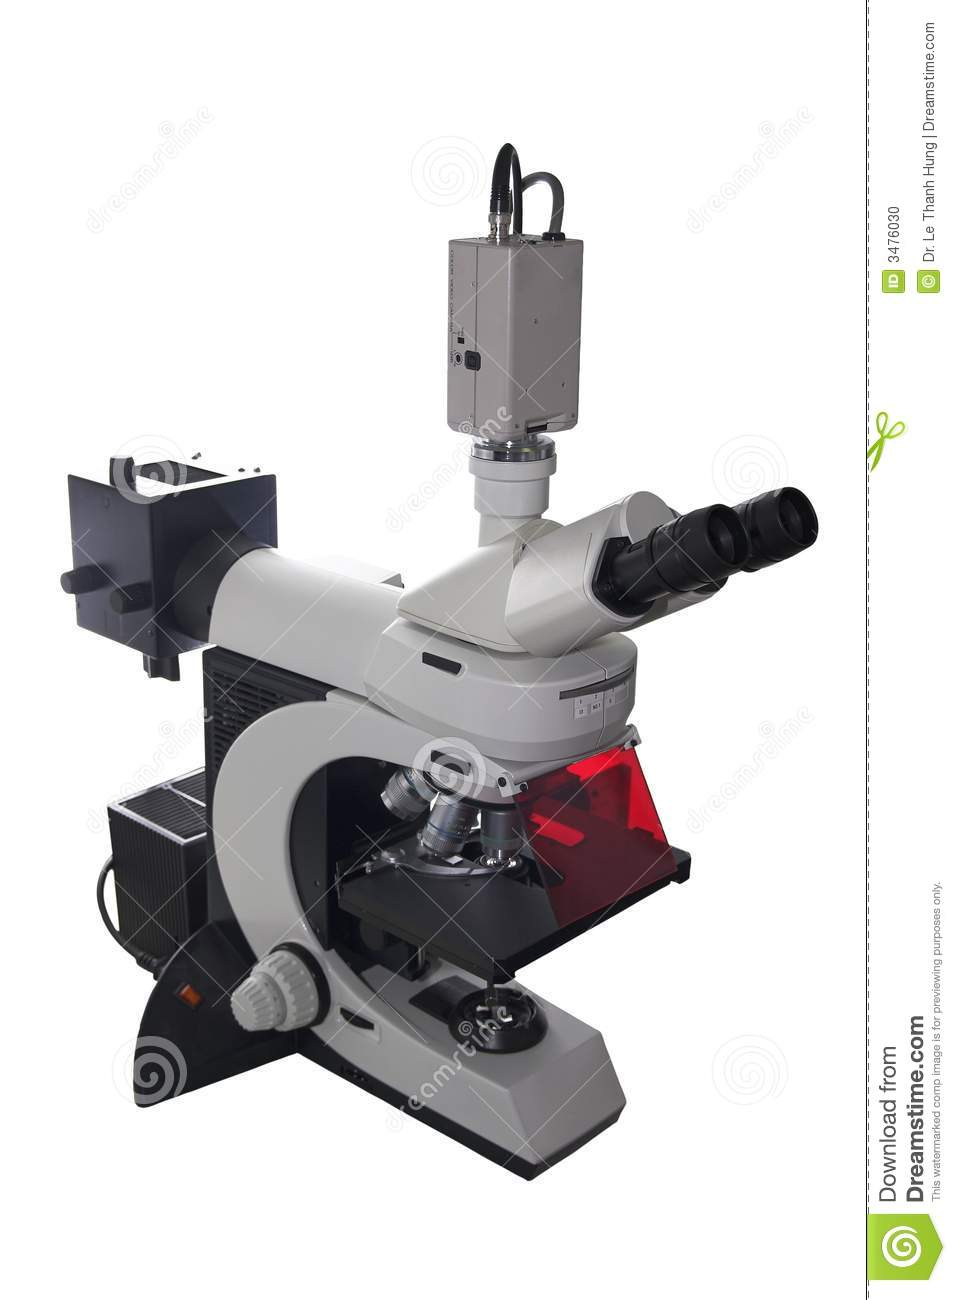 how to choose a microscope for electronics